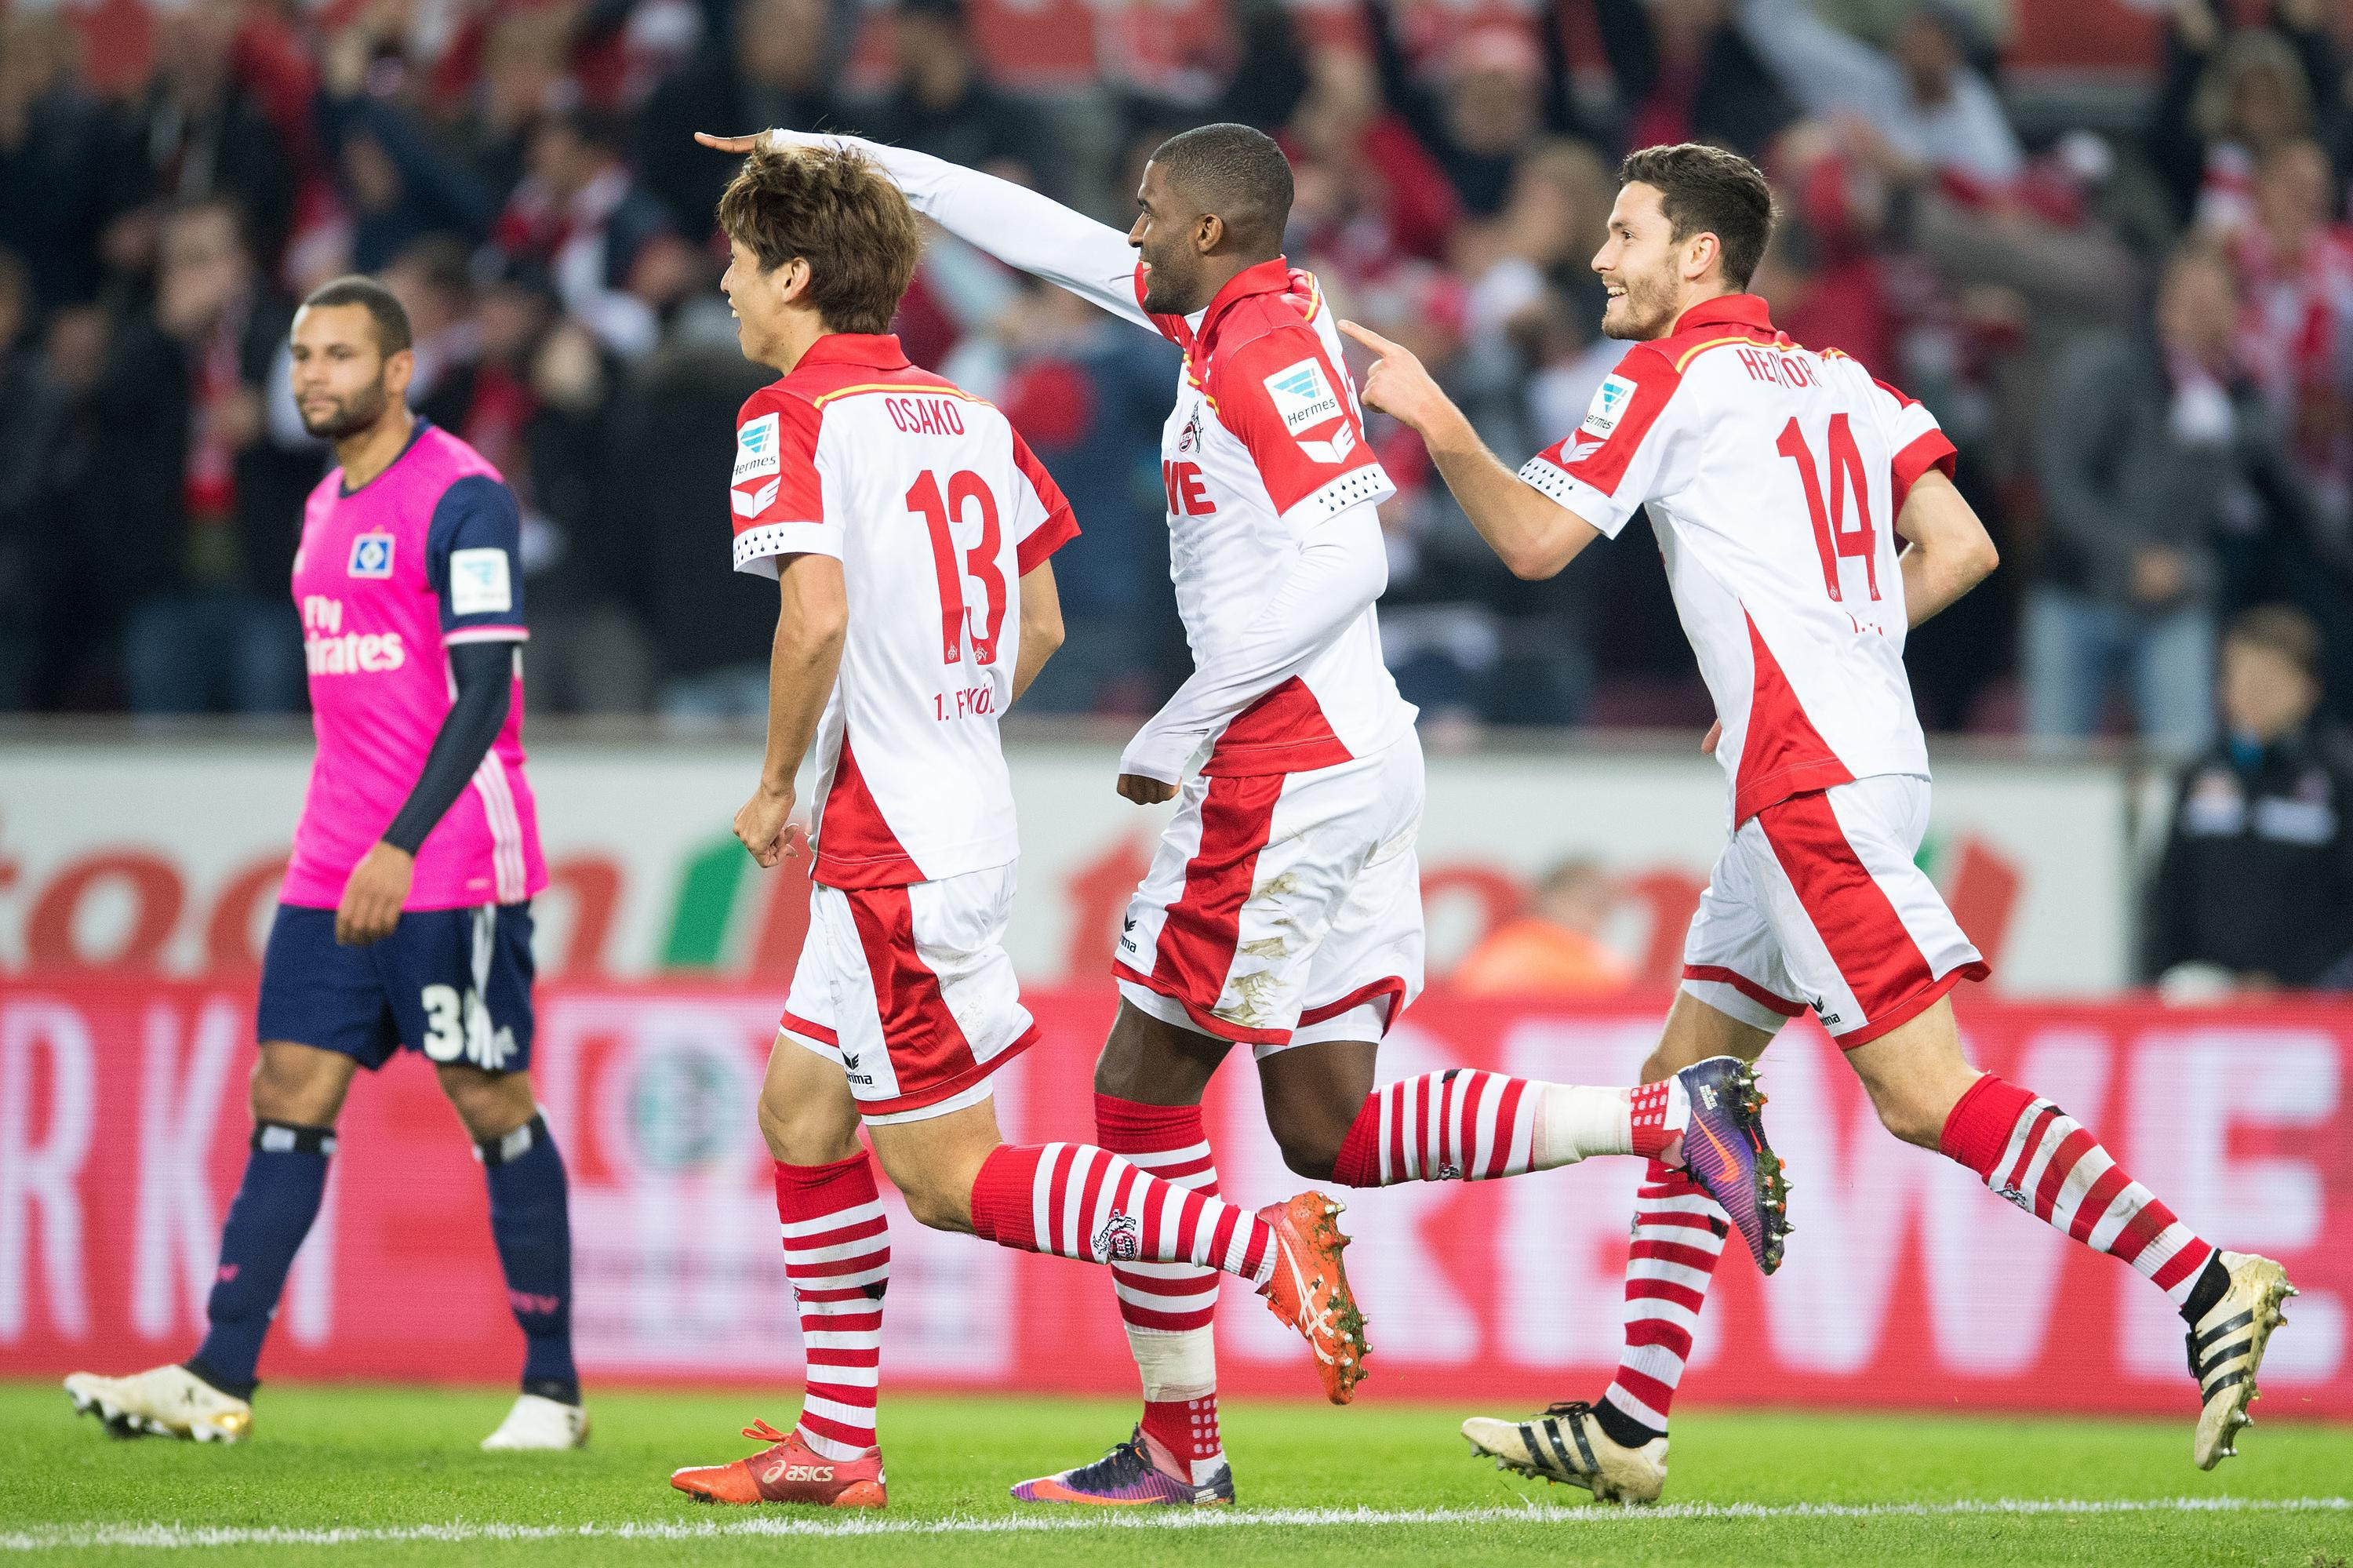 FC Koln VS Mainz BETTING TIPS (20-05-2017)